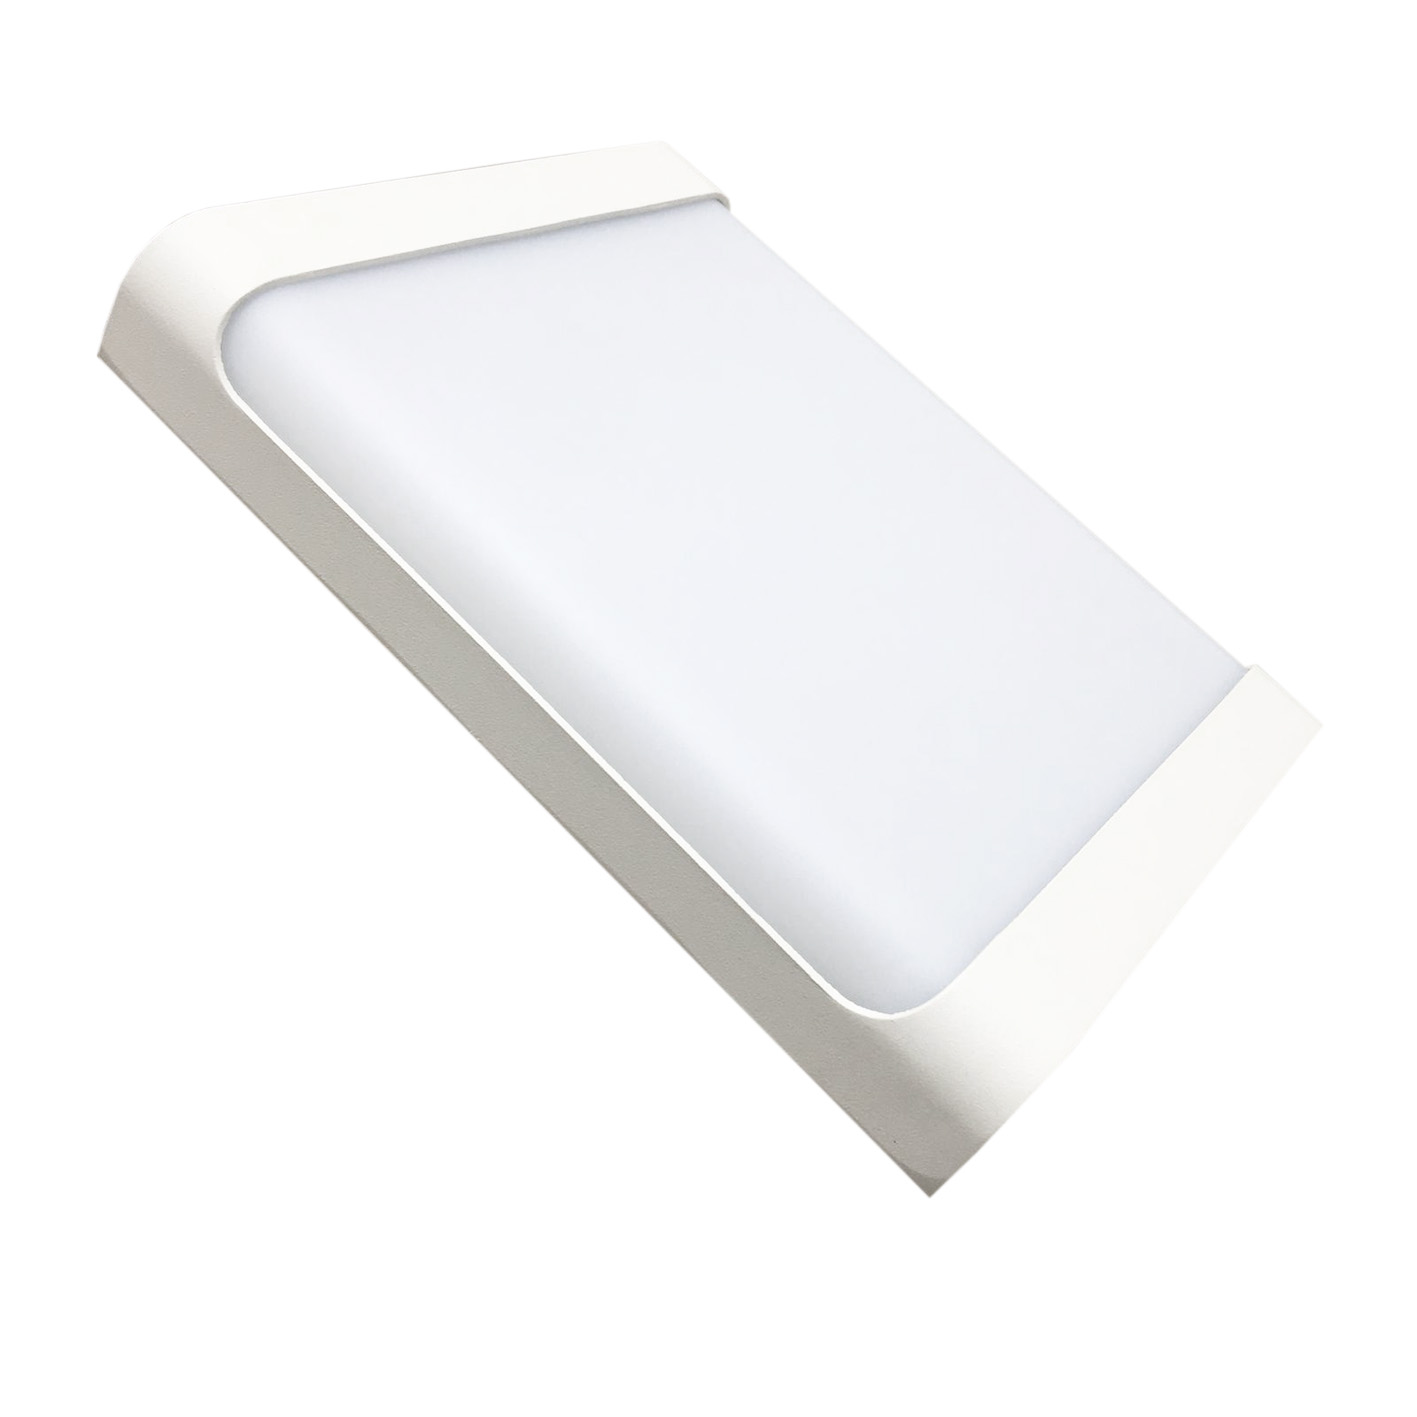 La lampe de mur de LED 18w rectangle finition blanc IP44 B71-18W